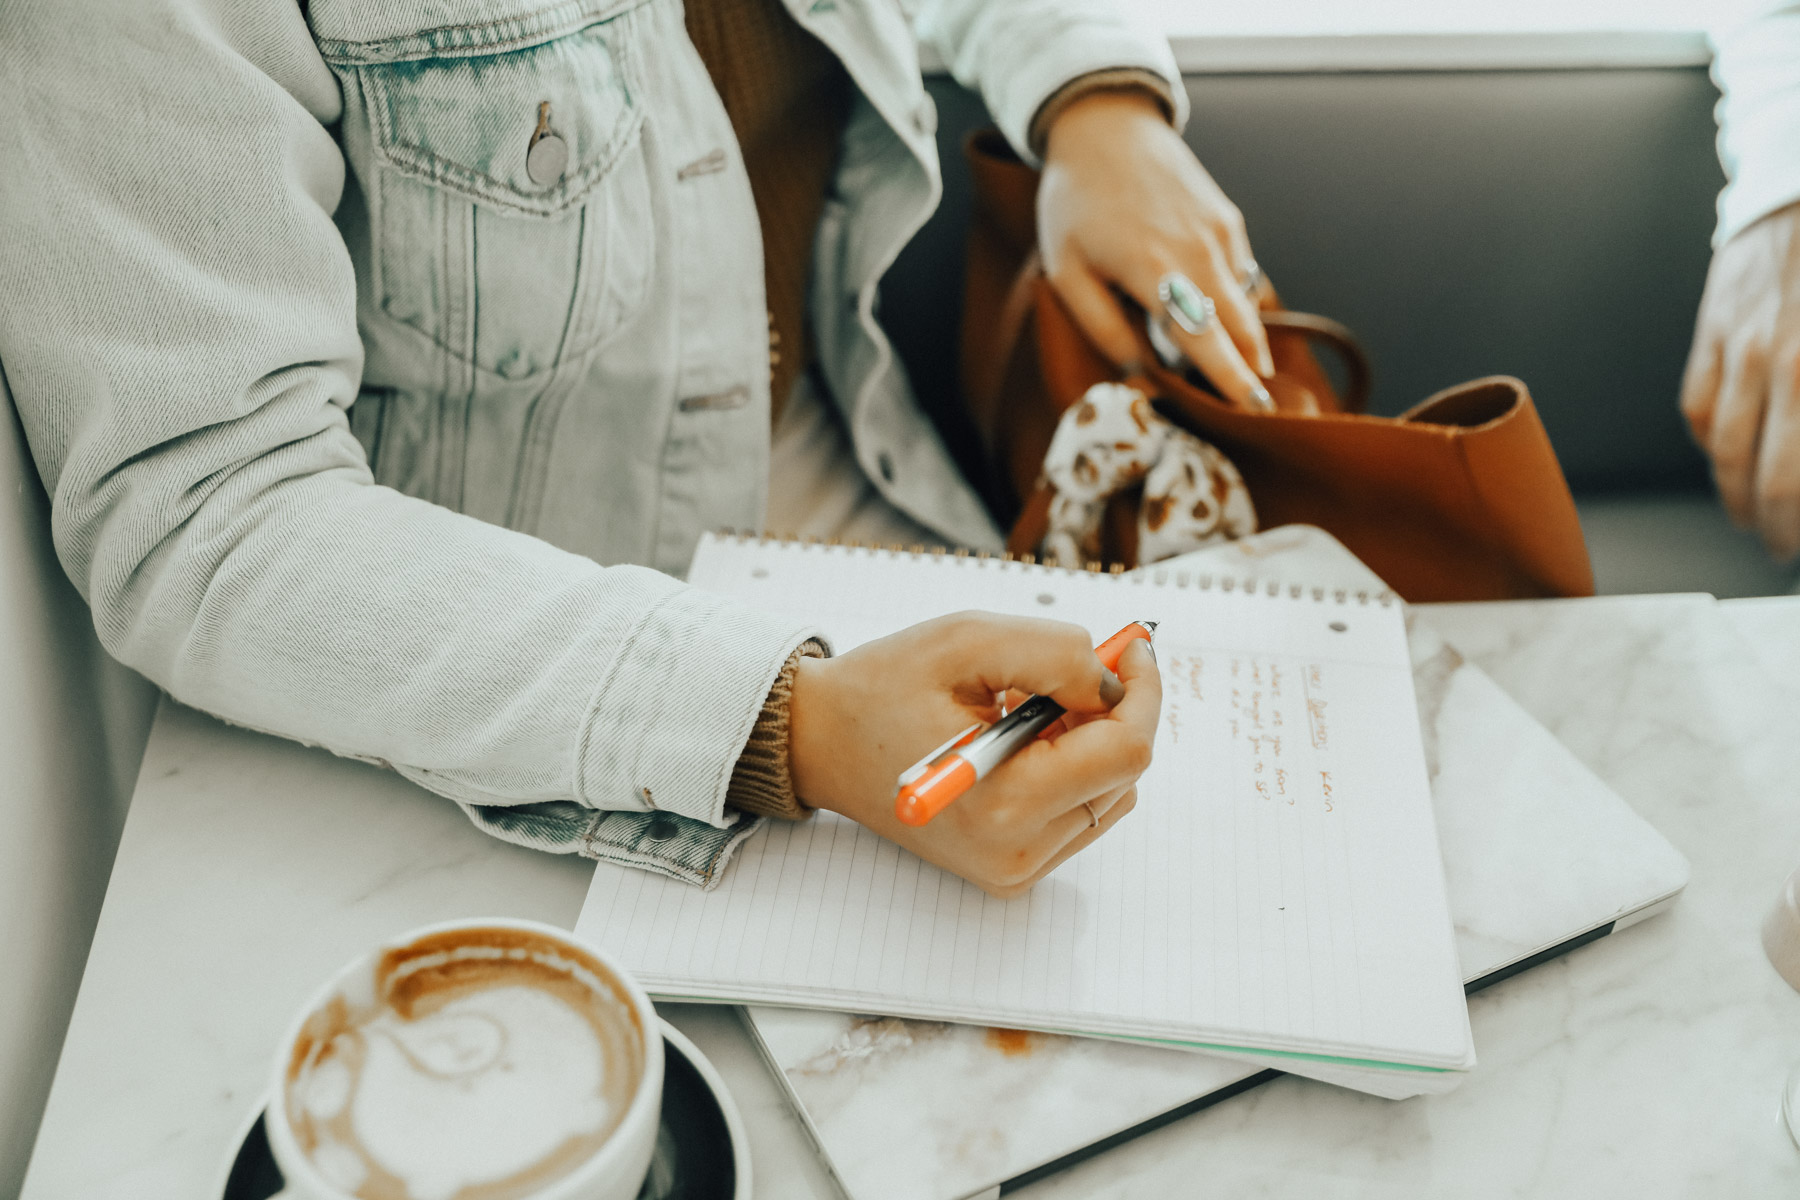 5 Journaling Prompts To Help You Find Direction In Your Twenties